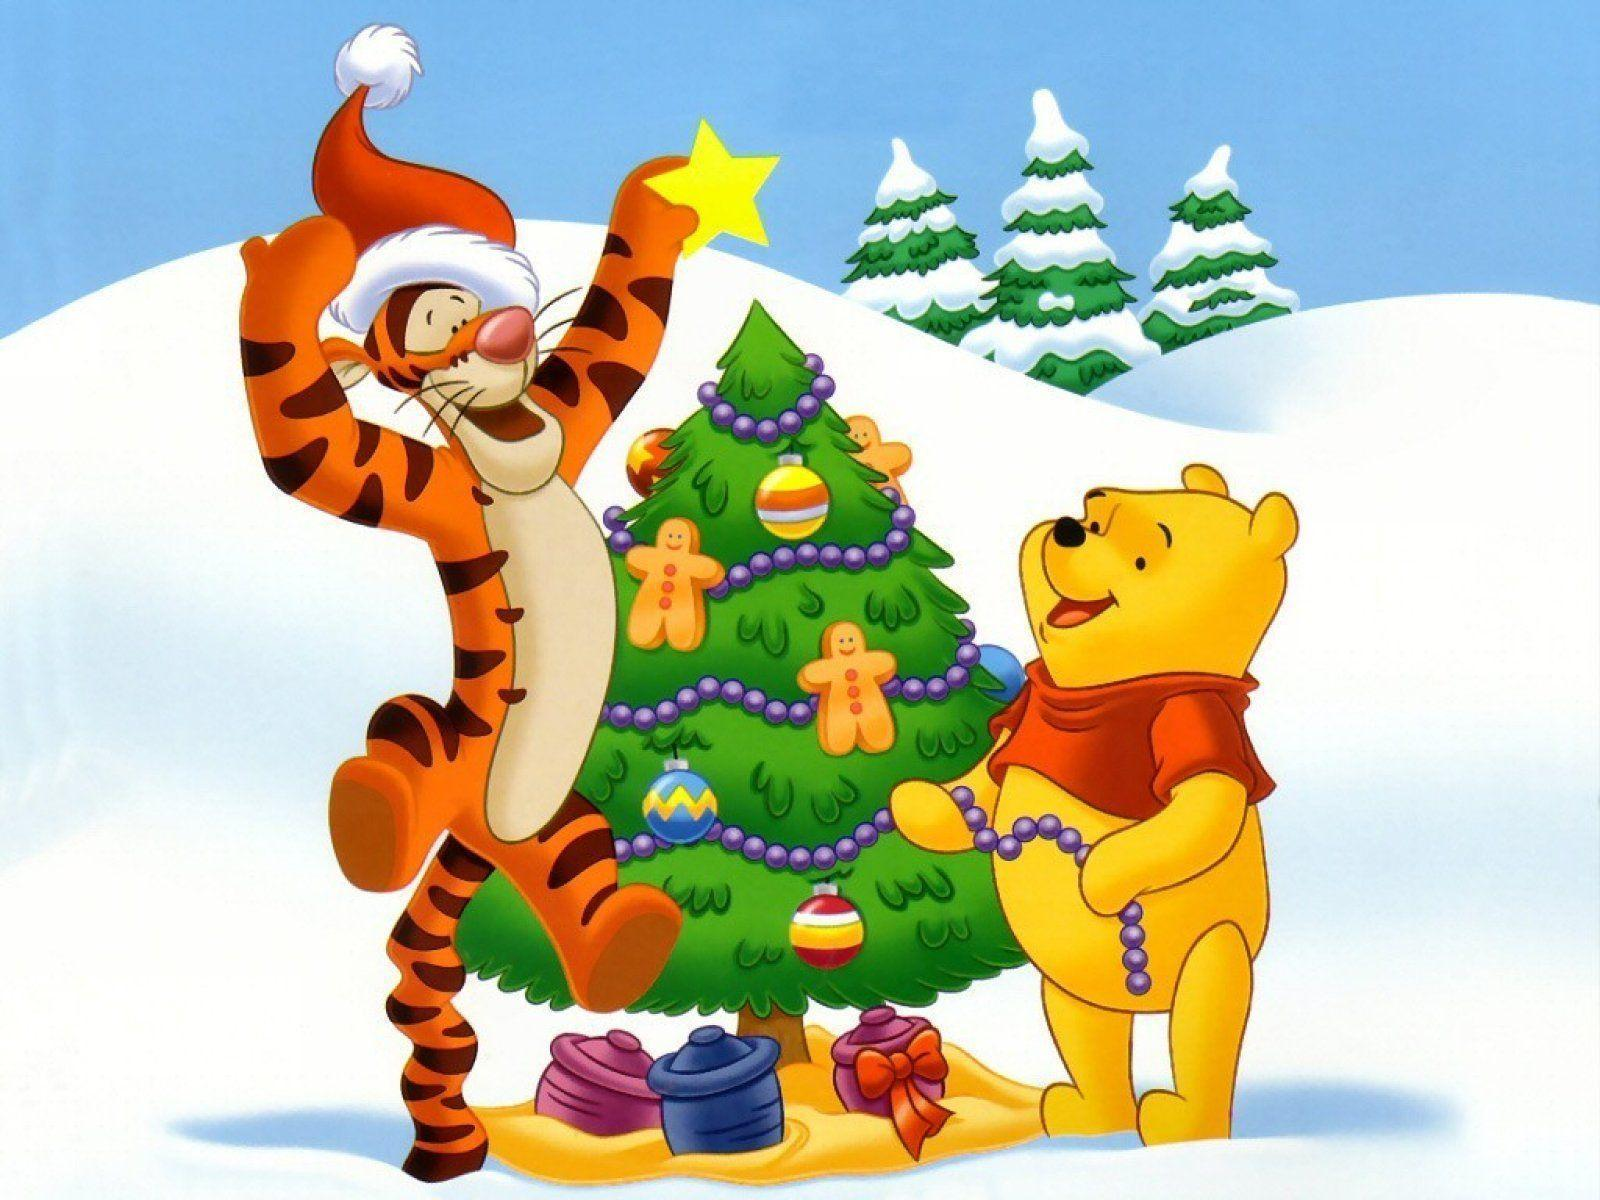 Christmas Tree for Winnie the Pooh